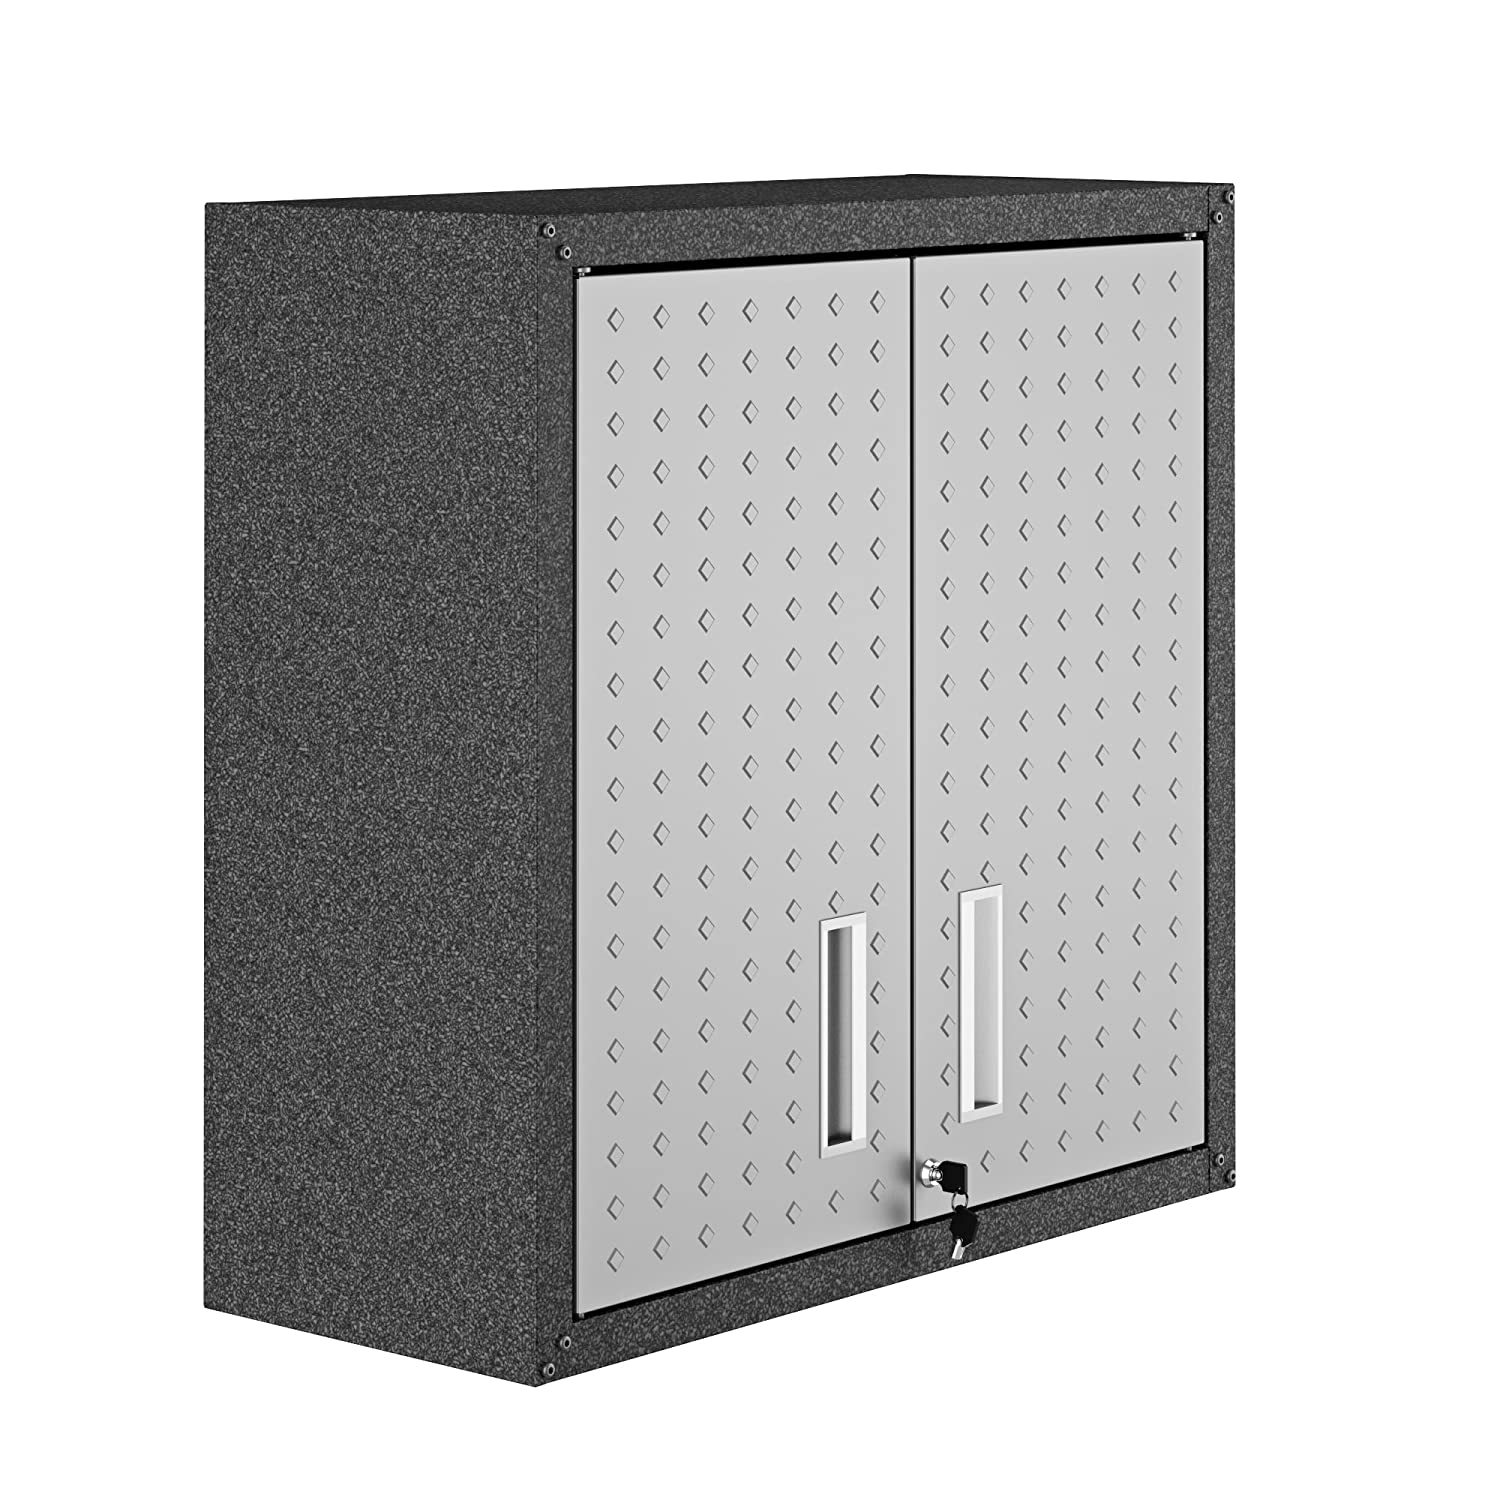 15. Manhattan Comfort 5GMC Fortress Floating Garage Storage Cabinet